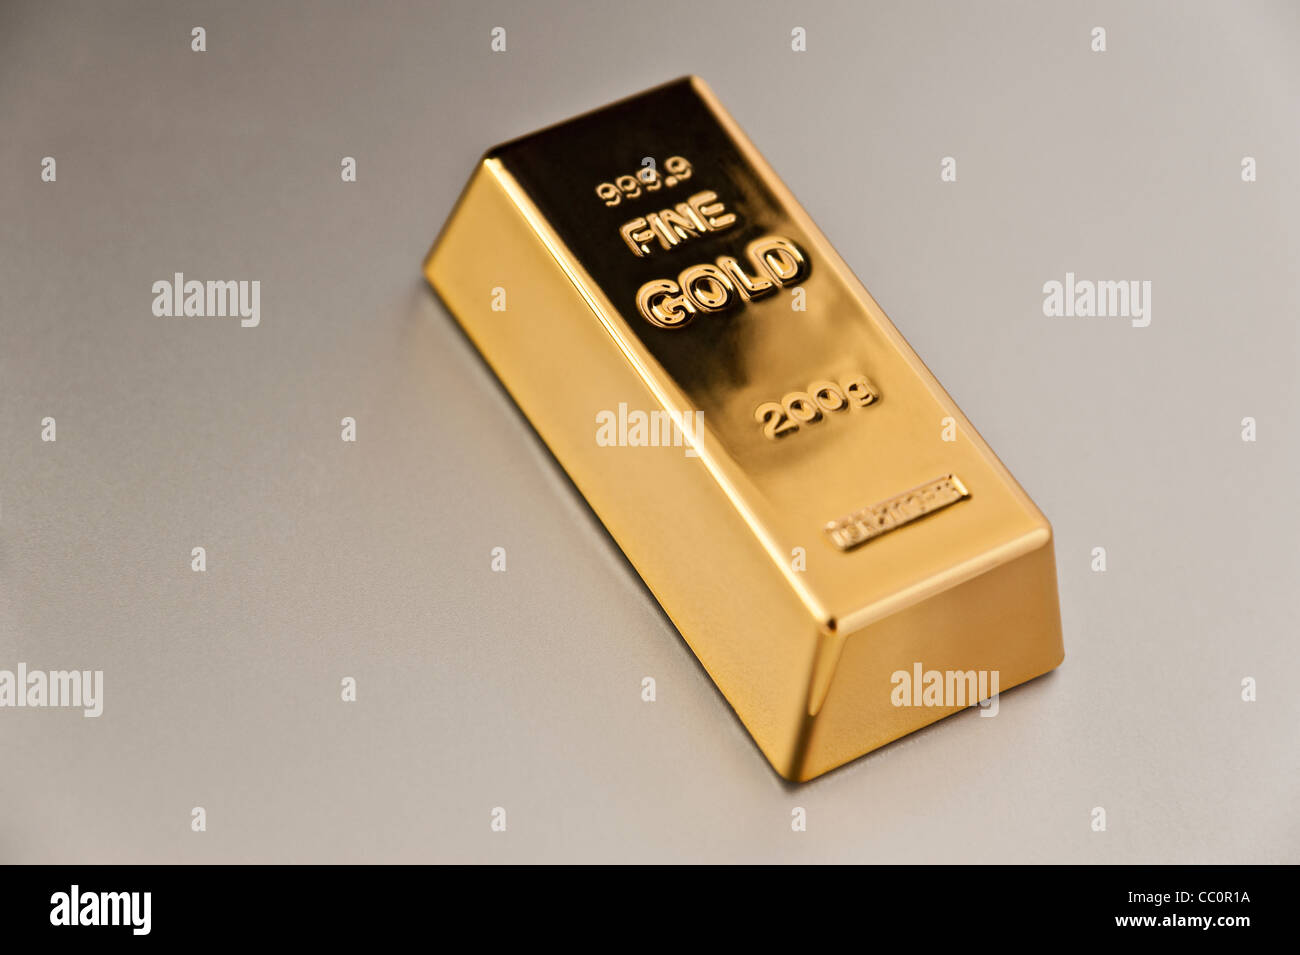 Fine Gold Bar on a silver background - Stock Image